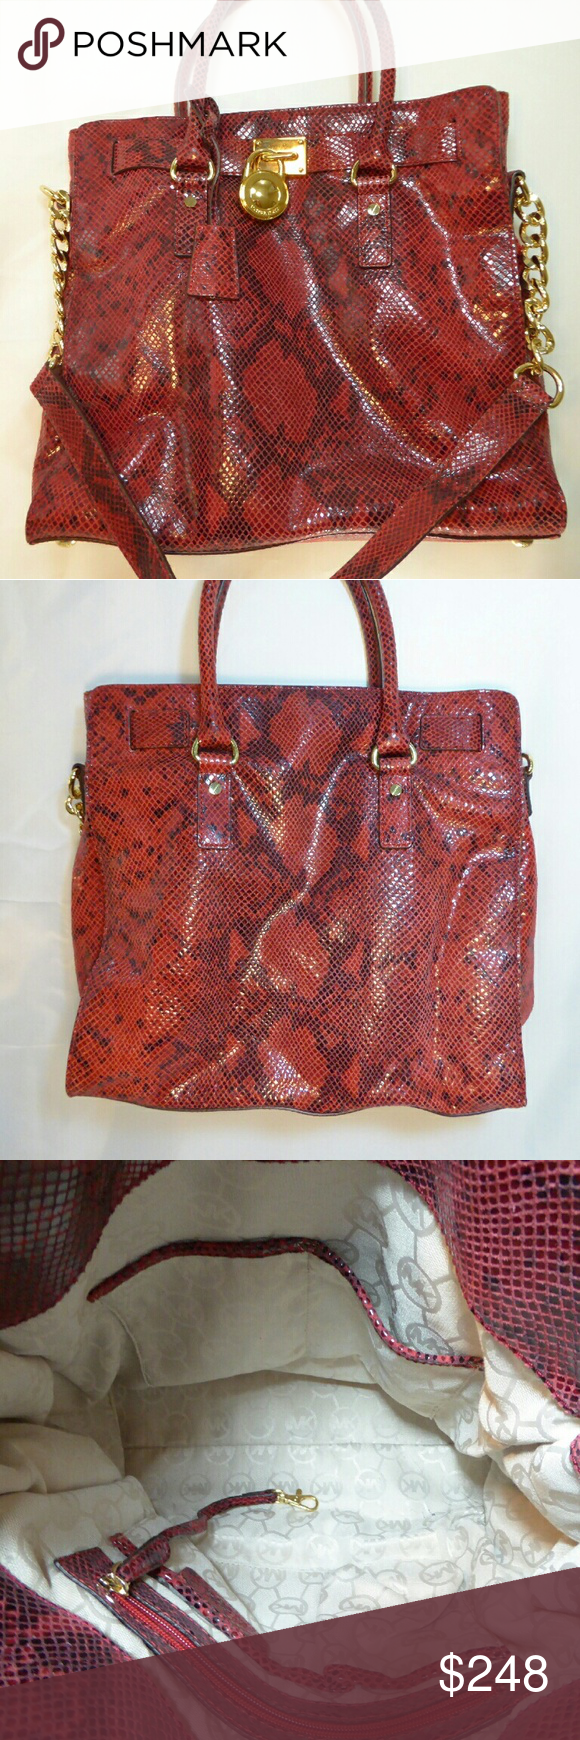 """Michael Kors Python Hamilton Red hot Python embossed leather Michael Kors Tote Bag. Gold hardware, no scratches, or scuff marks.  Snap closure, interior zip and slip pockets, key fob, and signature print lining.  Double straps with approx 4.25"""" drop, 13"""" drop shoulder strap.   Approx 14""""L x 13.5H x 4.25"""" W.  Excellent condition. Thank you for your interest. Bags Totes"""